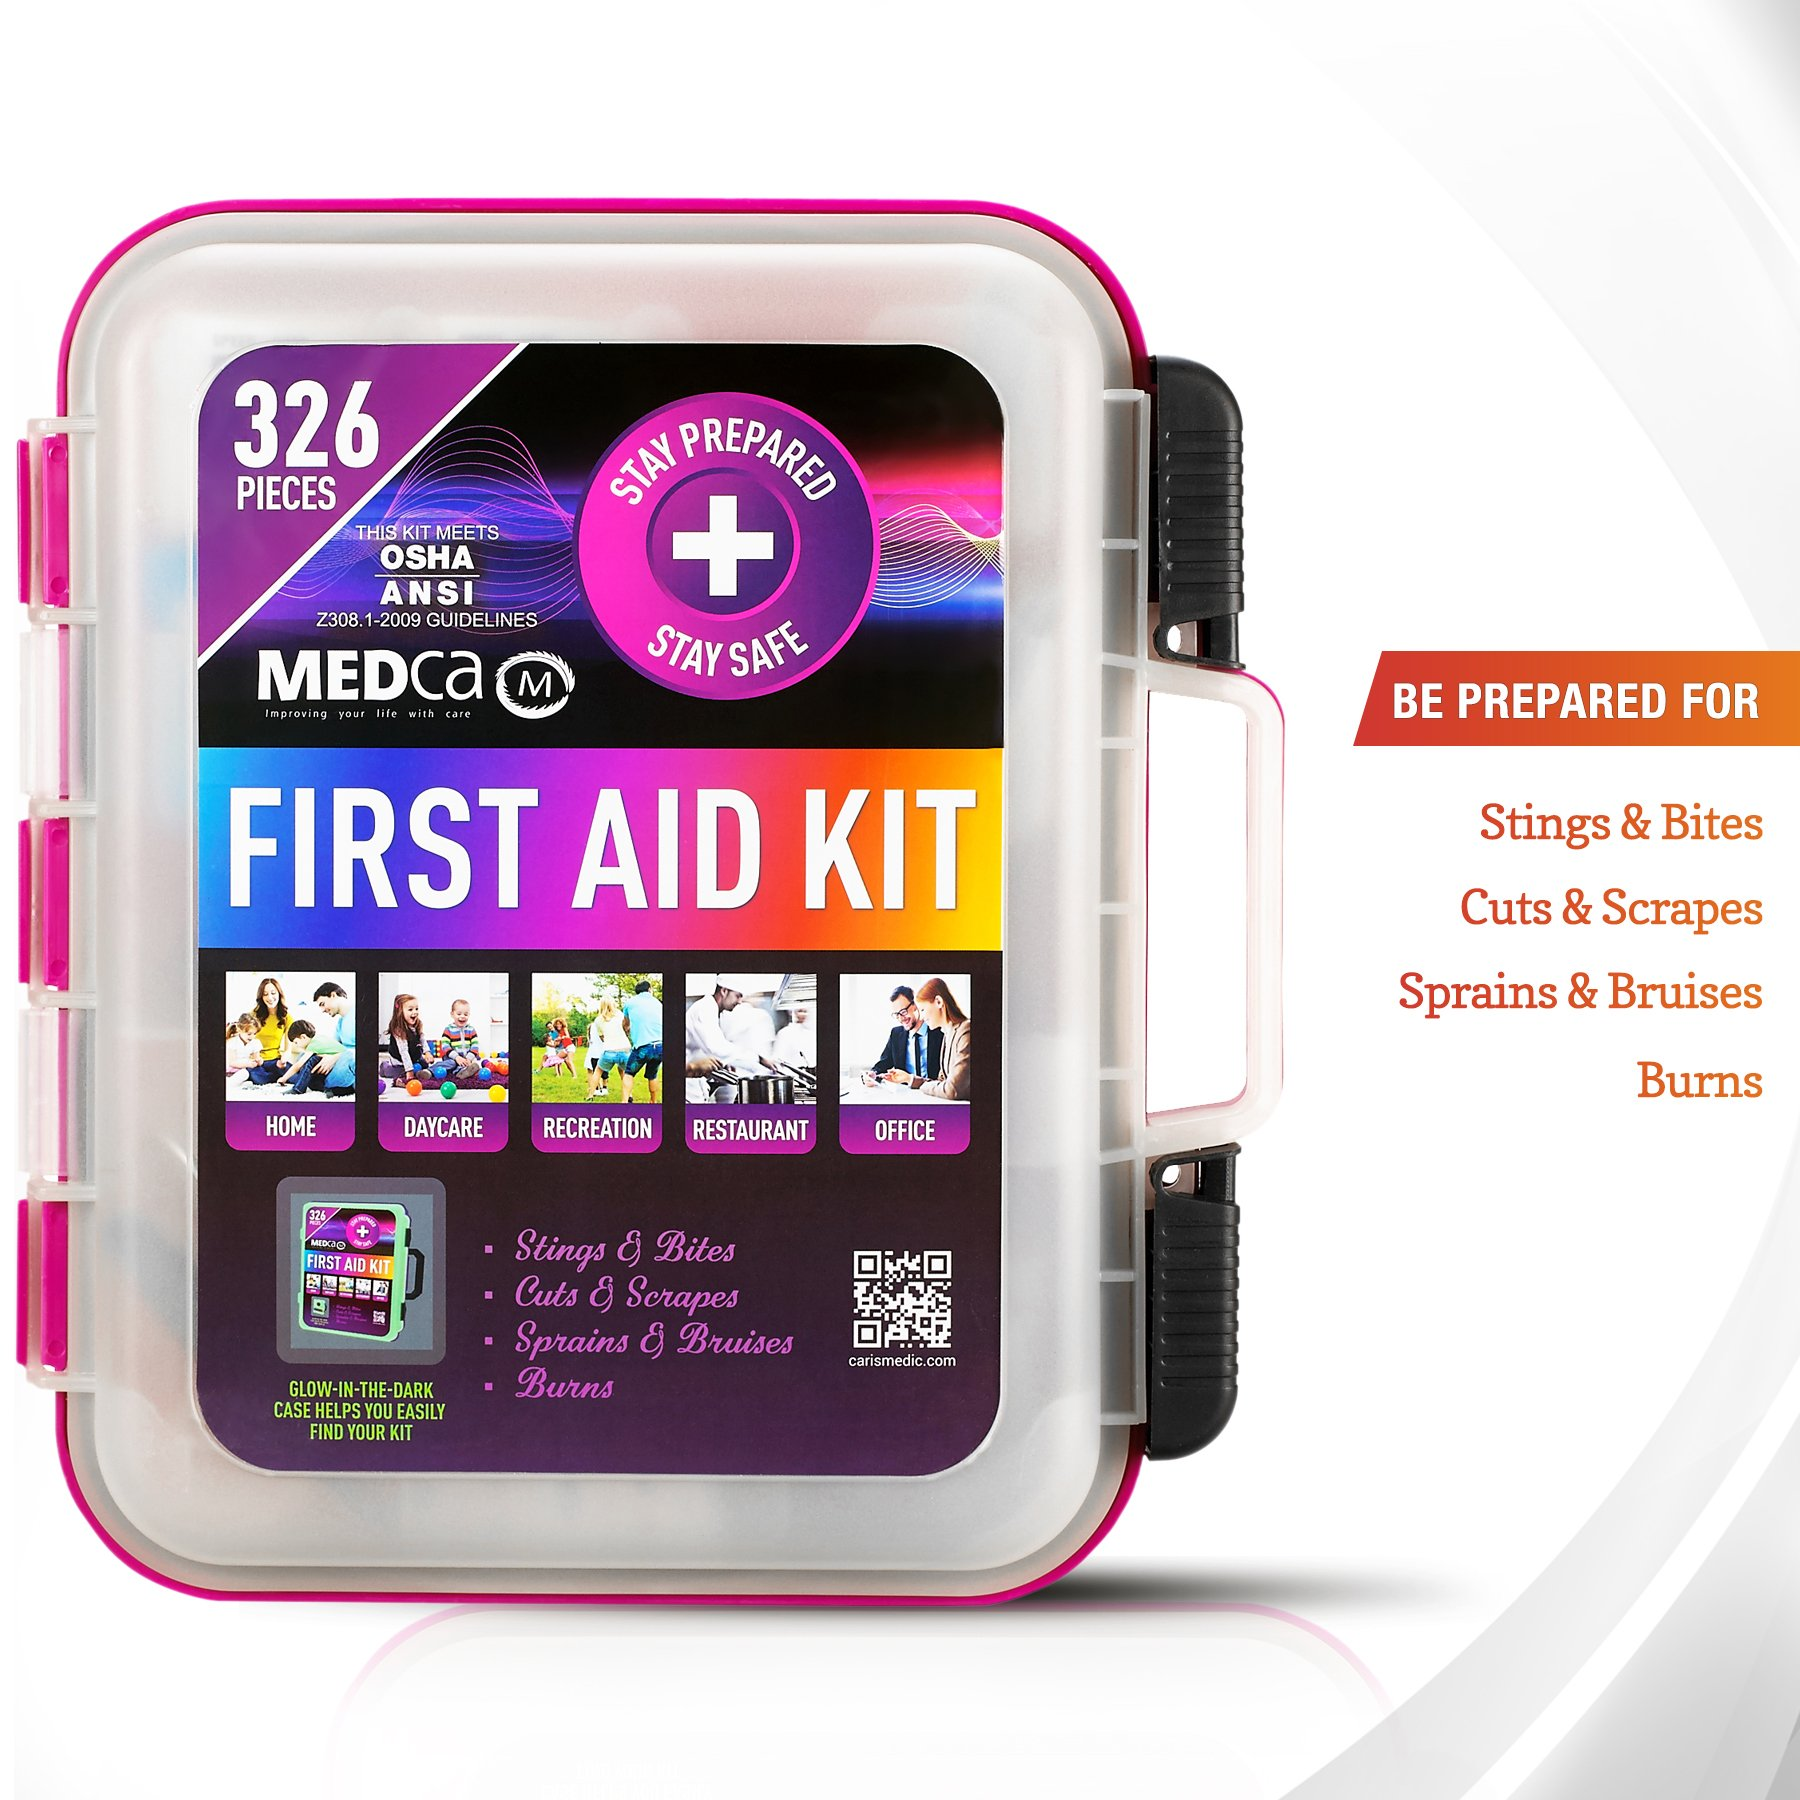 First Aid Kit - Emergency First Aid Kit and Medical Kit Exceeds ANSI Z308.1-2009 OSHA Standards, Hard Case, Wall Mount & Glows in The Dark for Offices, Home, Schools, Daycare, Construction Sites by MEDca (Image #5)